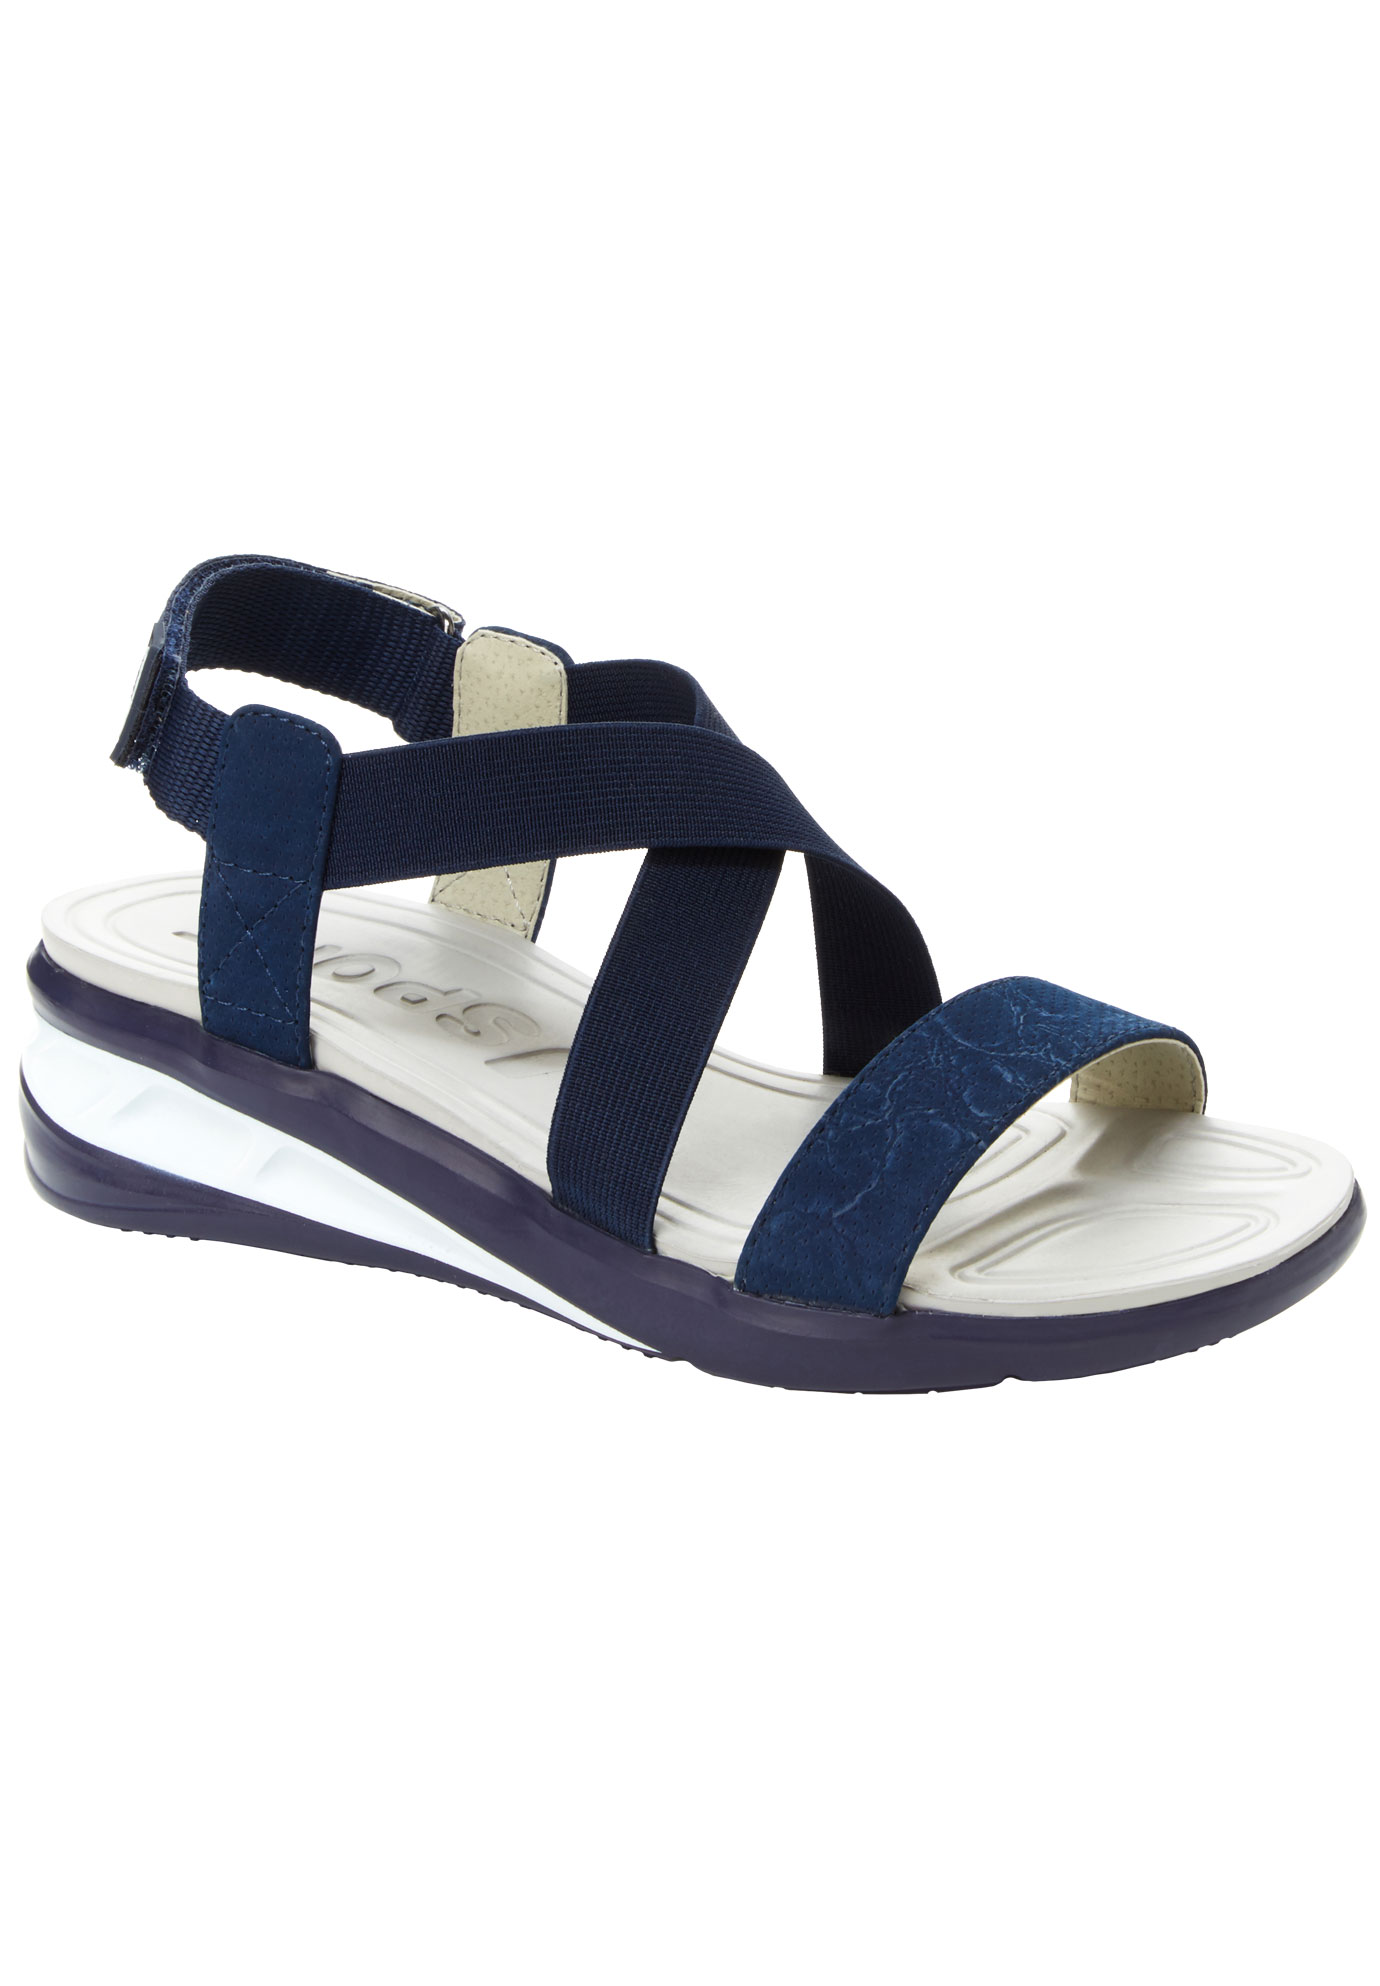 Sunny Sandals by JSport®,